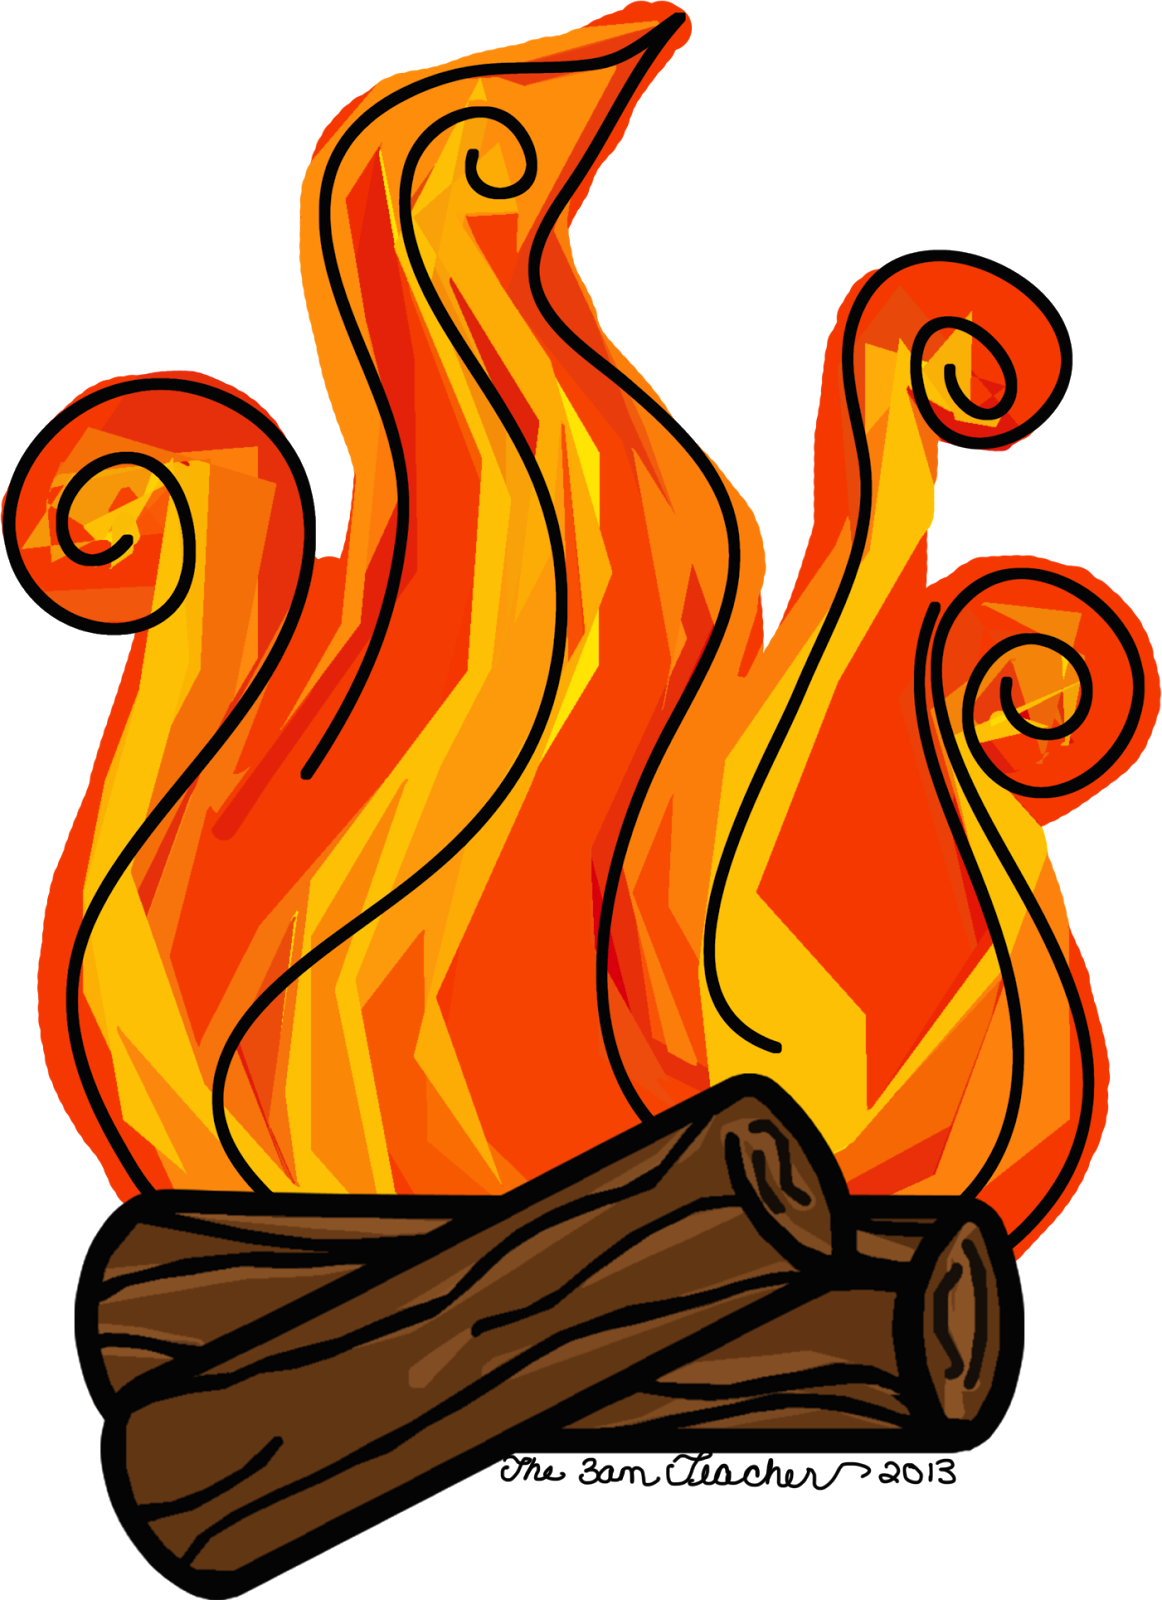 Clipart house fire banner library The 3am Teacher: Best Week Ever - NOT! & a Free Cozy Fire Graphic banner library